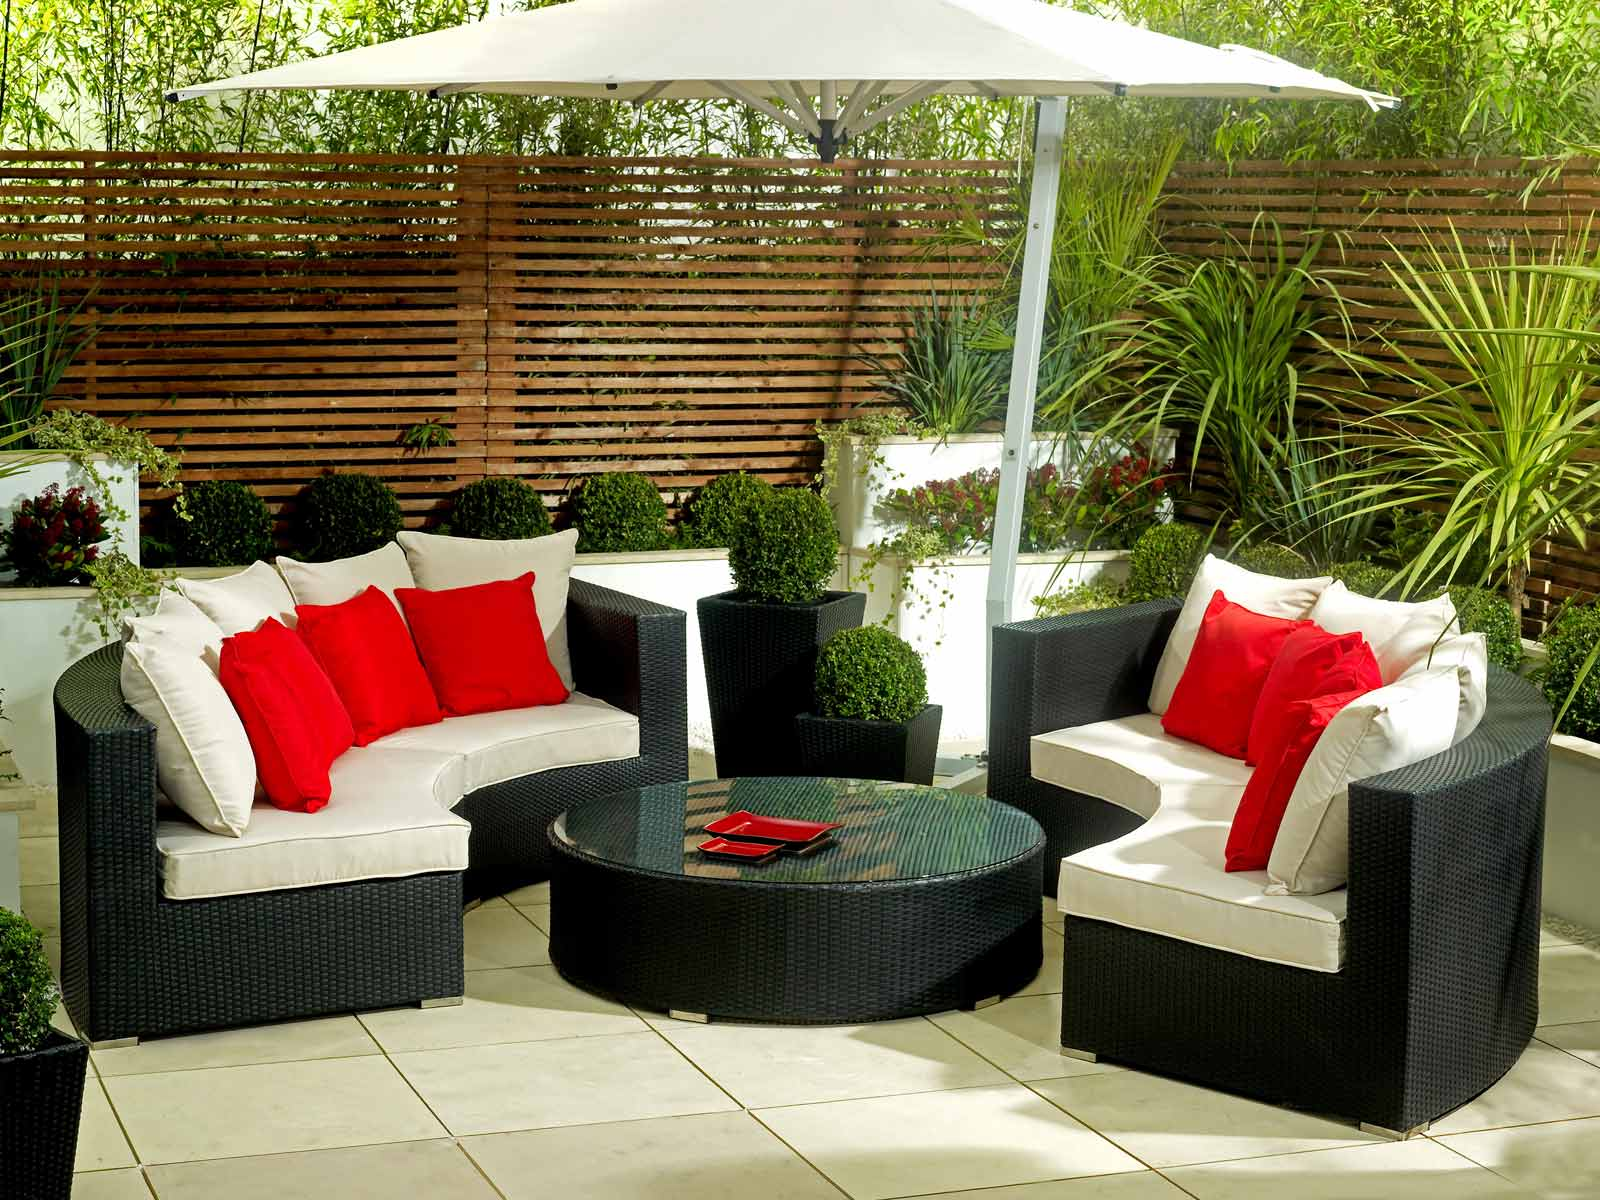 Furniture store sweet home furniture stores for Garden patio sets